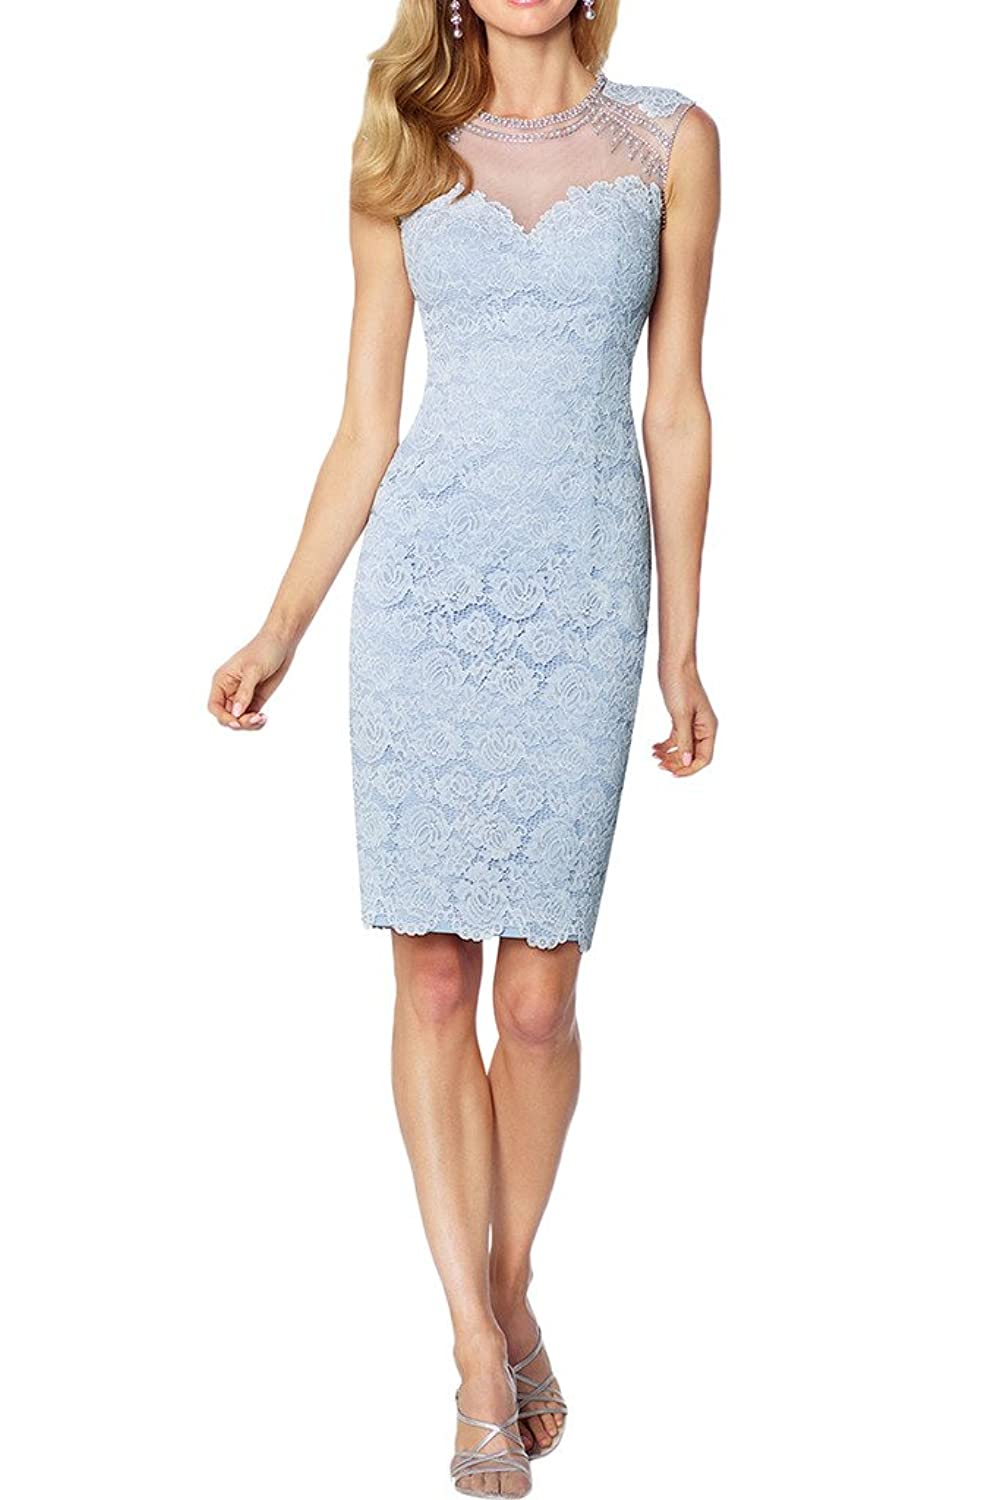 Gorgeous Bride Sheath Scoop Lace Mother of the Bride Cocktail Dresses Short